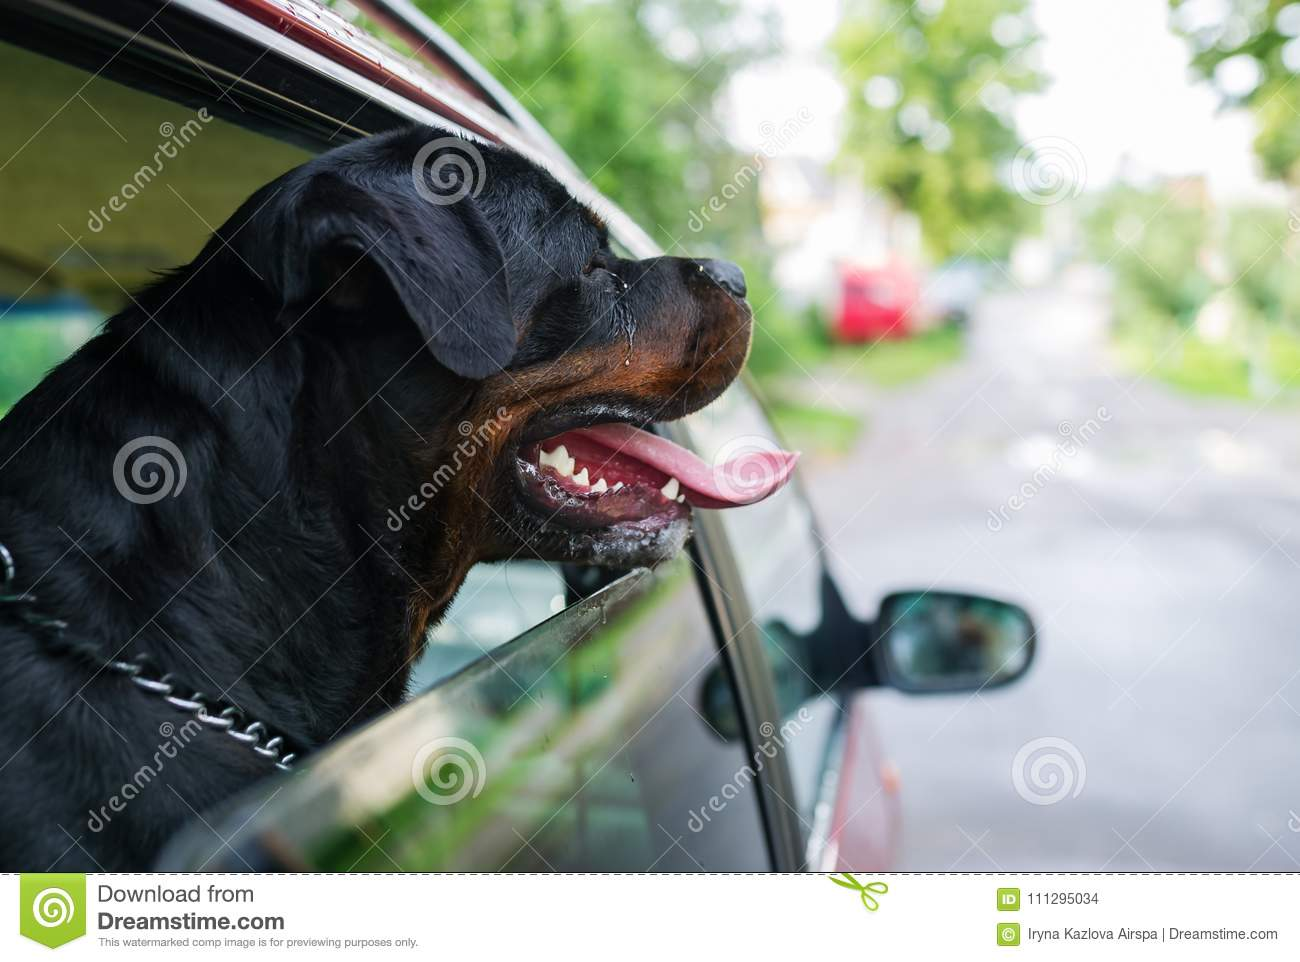 Rottweiler dog sit in the car and looks out of the window